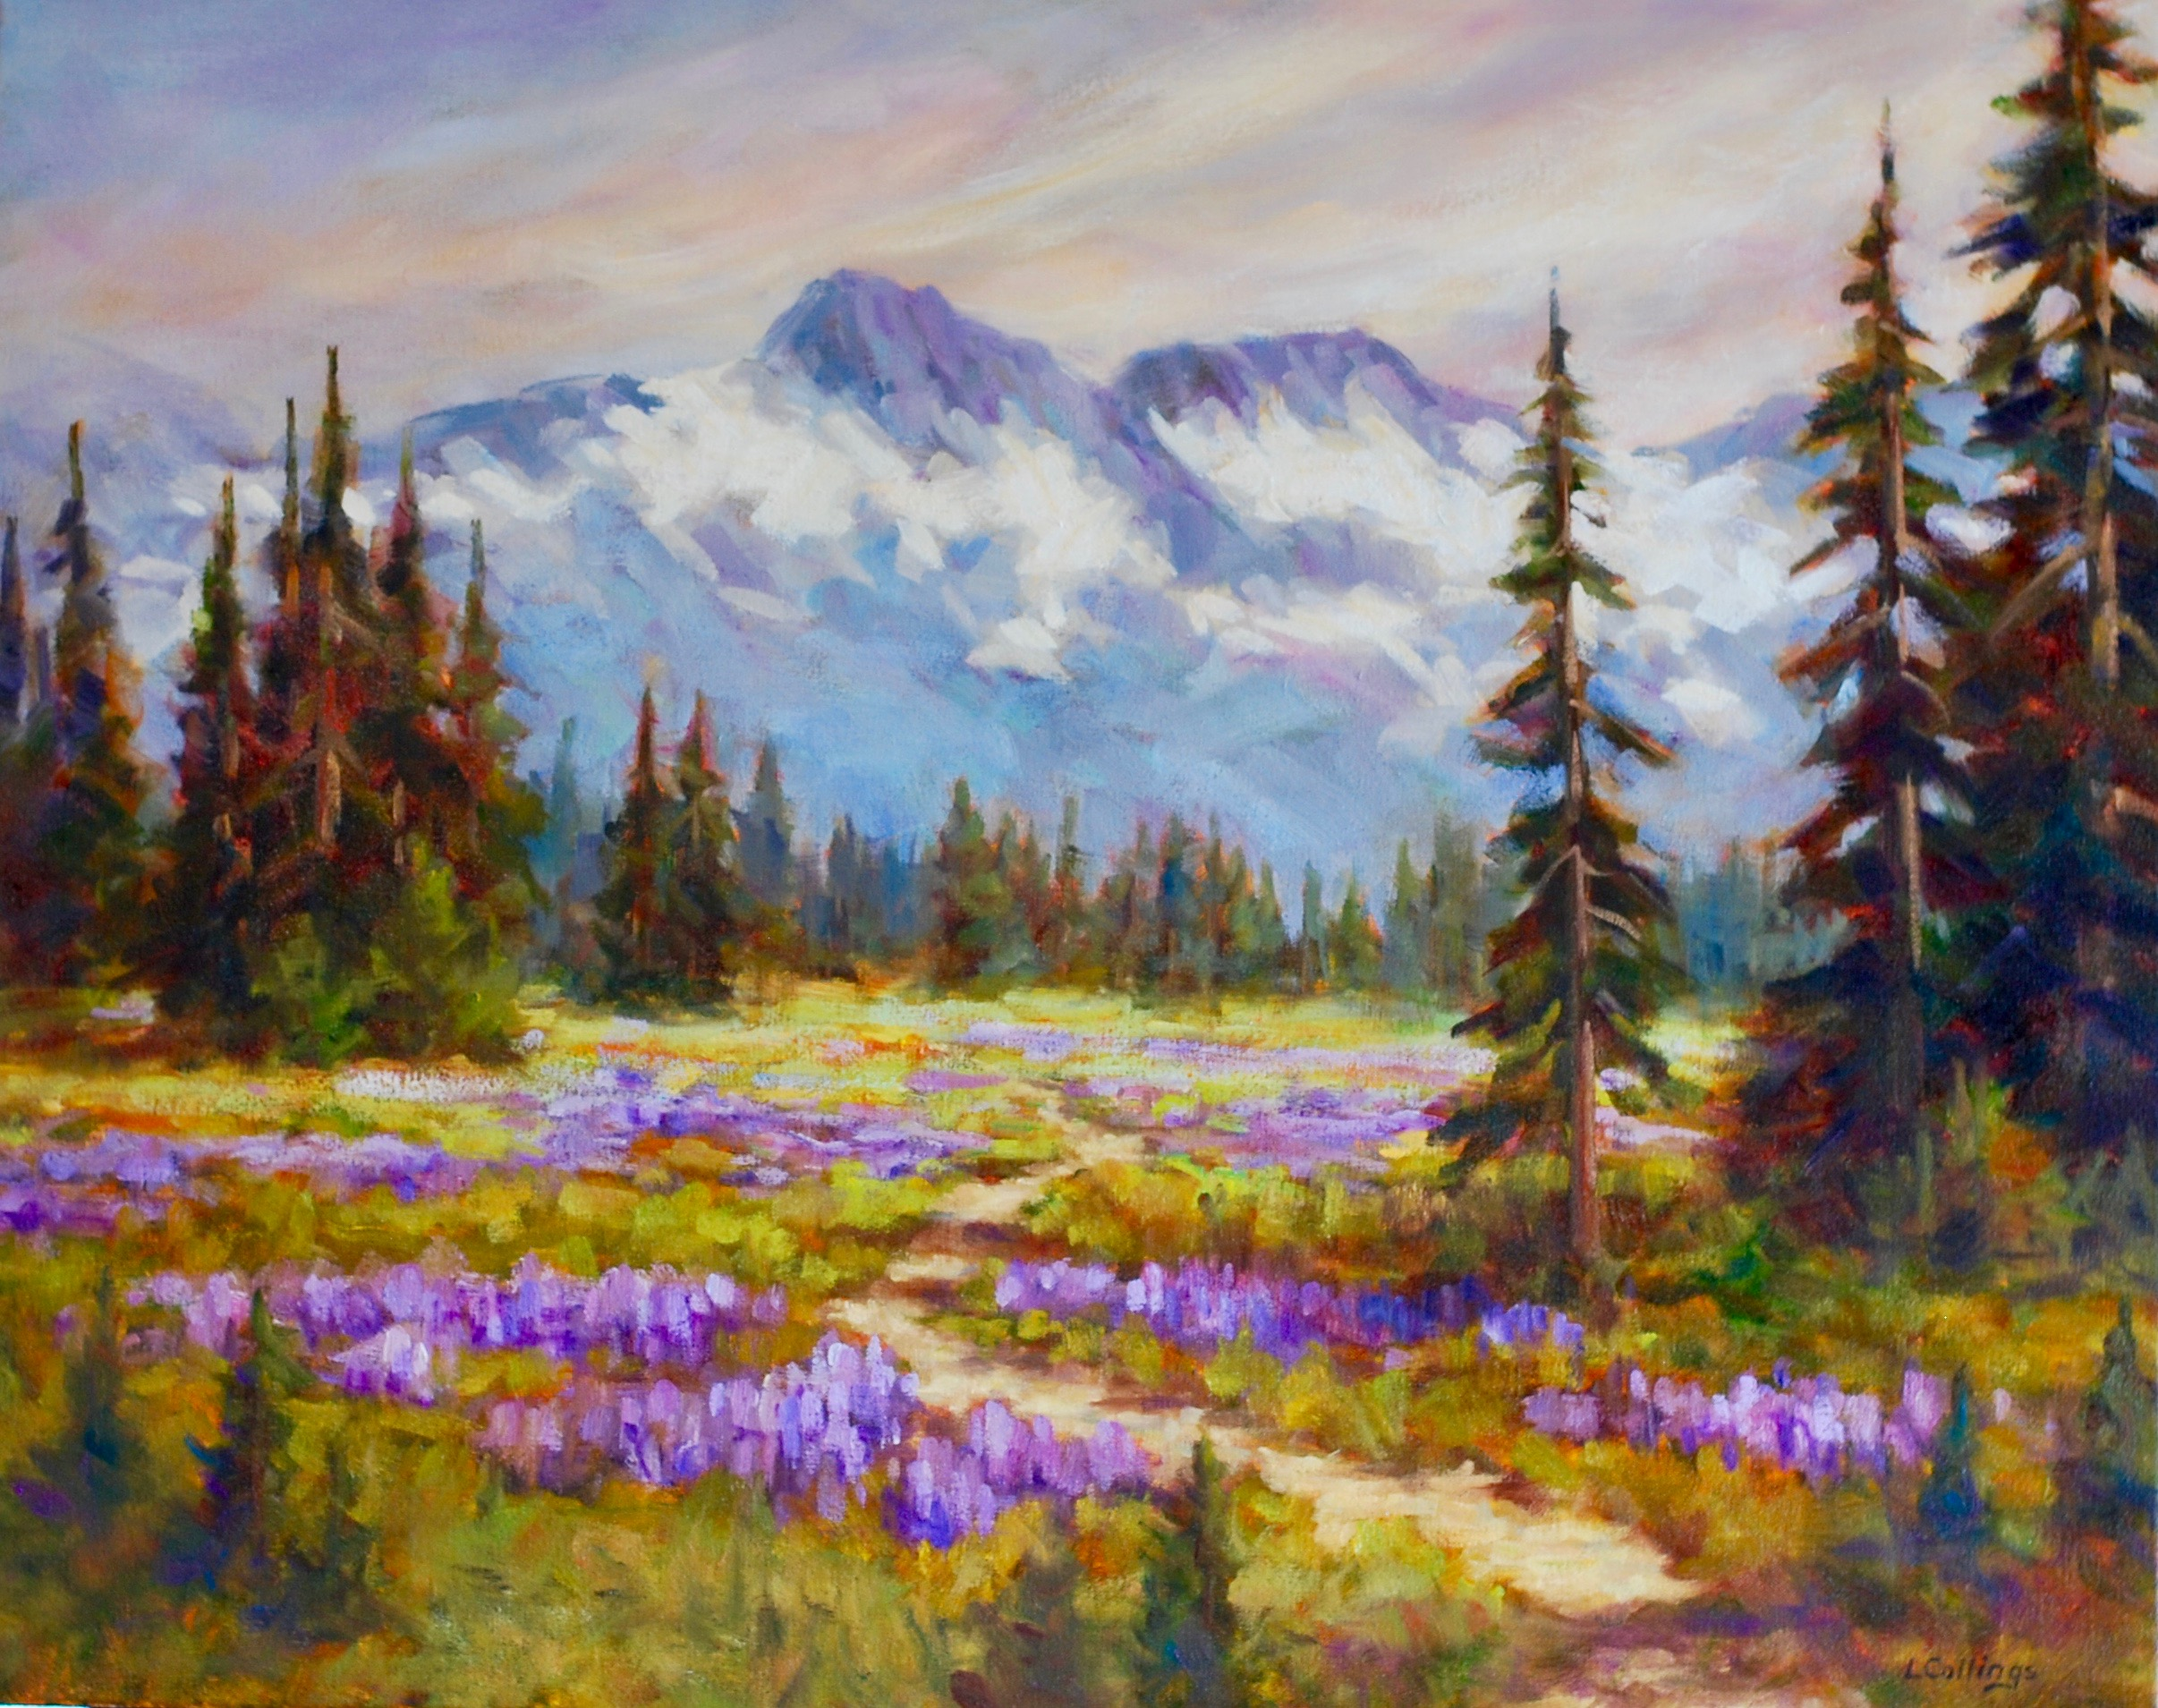 "10 - Lupin Field - 24 x 30"", oil on canvas, $1,080-"